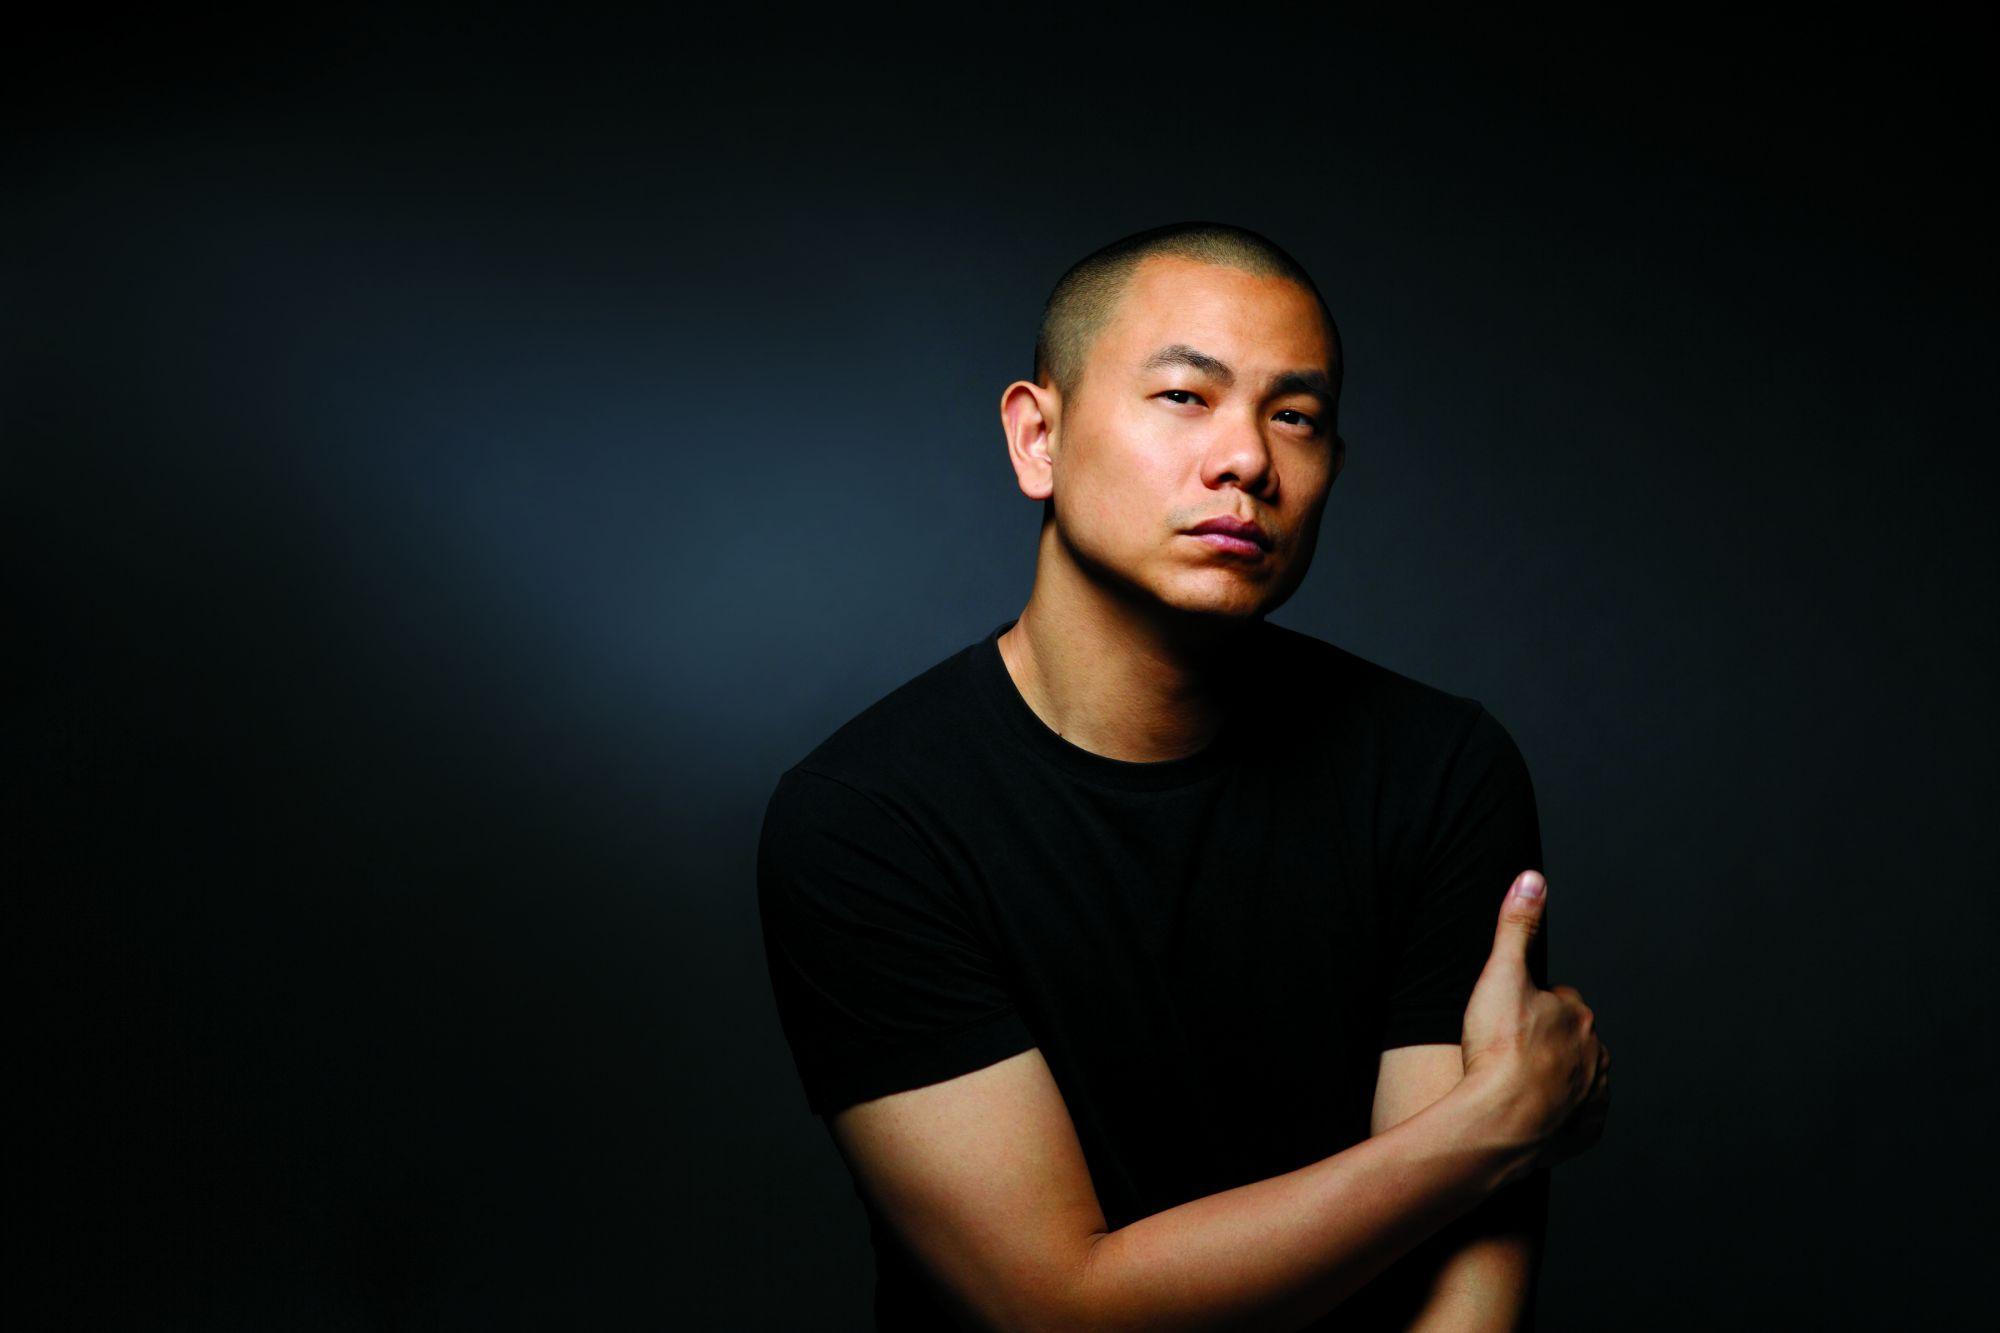 Chef Andre Chiang's Freestyle Philosophy